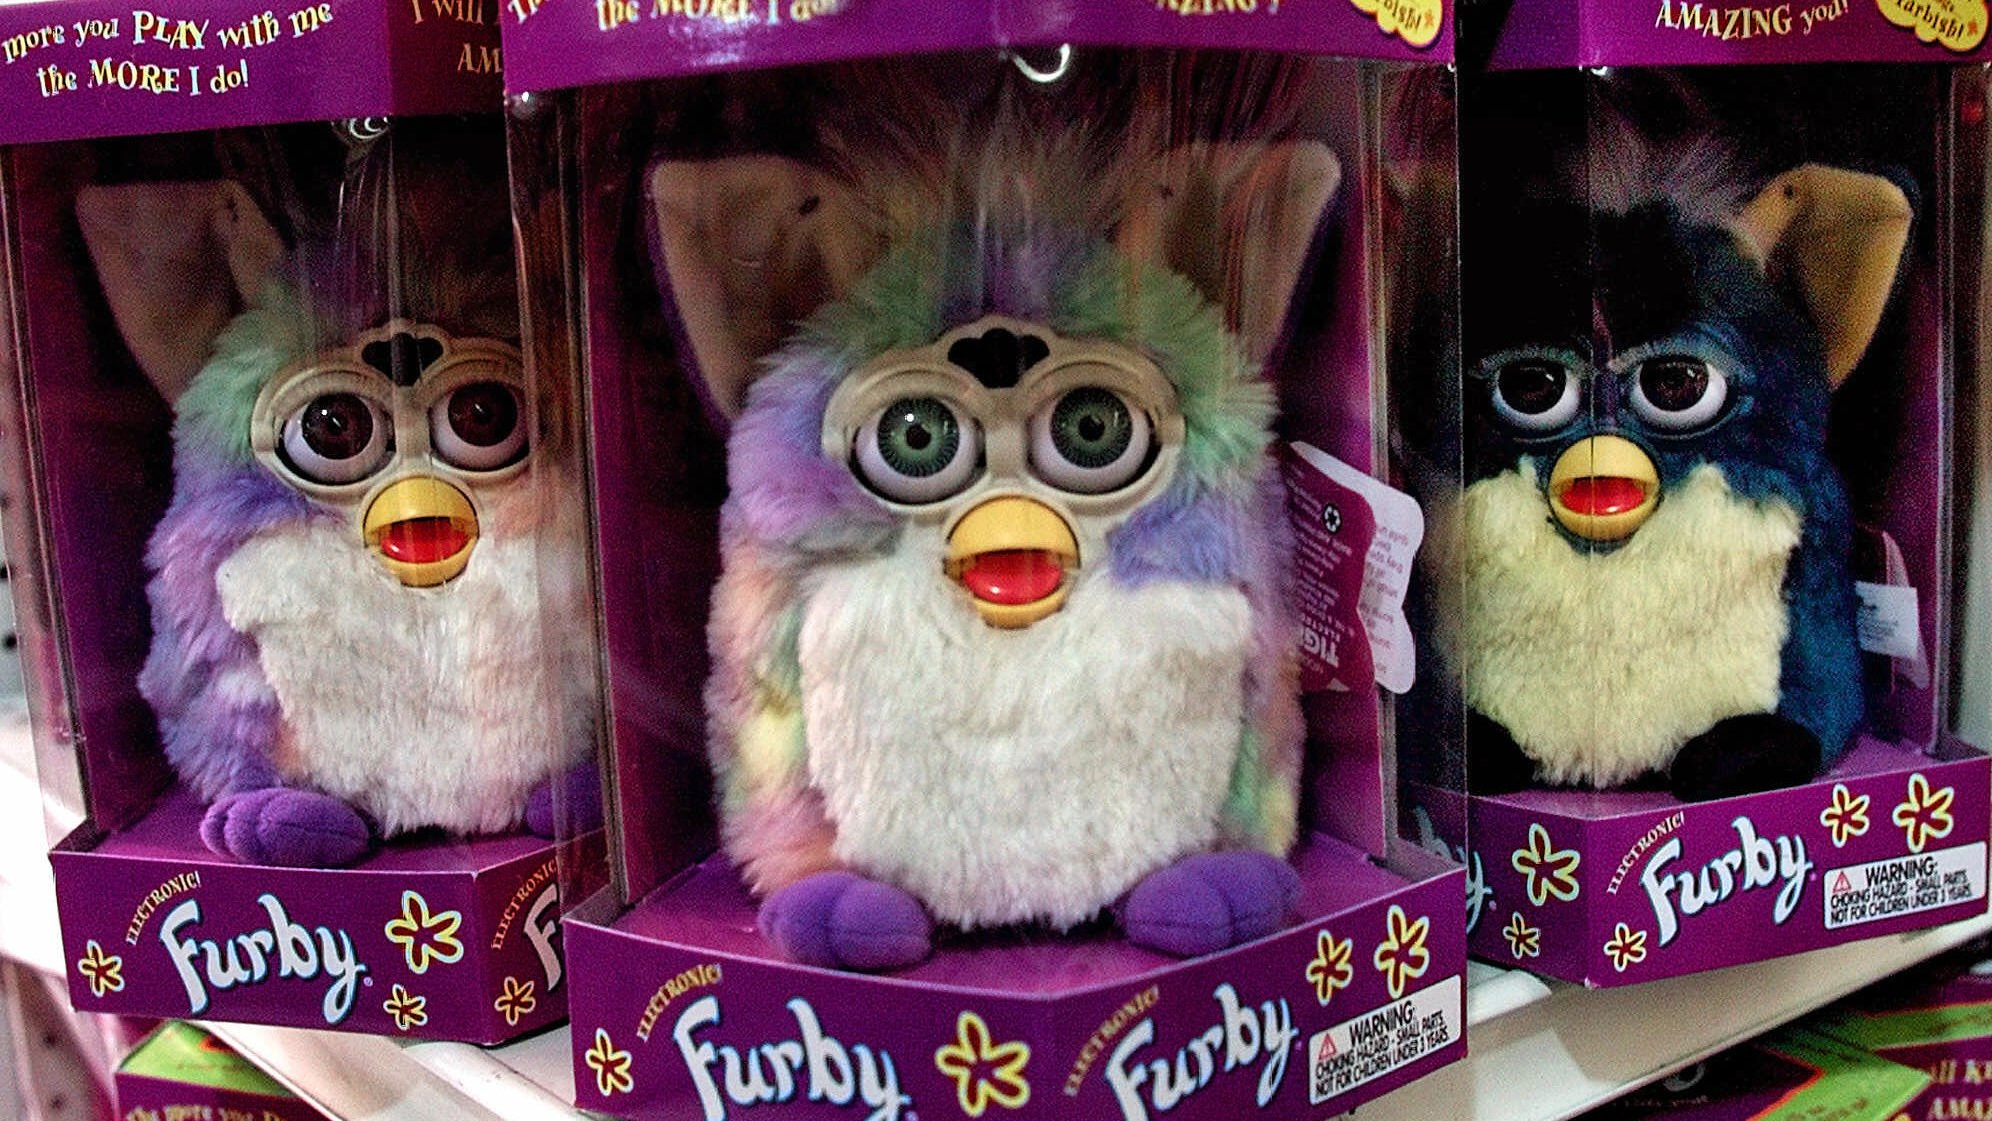 A display of Furby dolls, an interactive children's toy, is seen on display at a Toys 'R' Us store in Glendale, Calif., Wednesday, Sept. 29, 1999. The Sept. 21 earthquake that devastated parts of Taiwan is sending tremors through the toy and personal computer industries, which rely on Taiwanese semiconductors for products ranging from personal computers to interactive Furby dolls. (AP Photo/Damian Dovarganes)